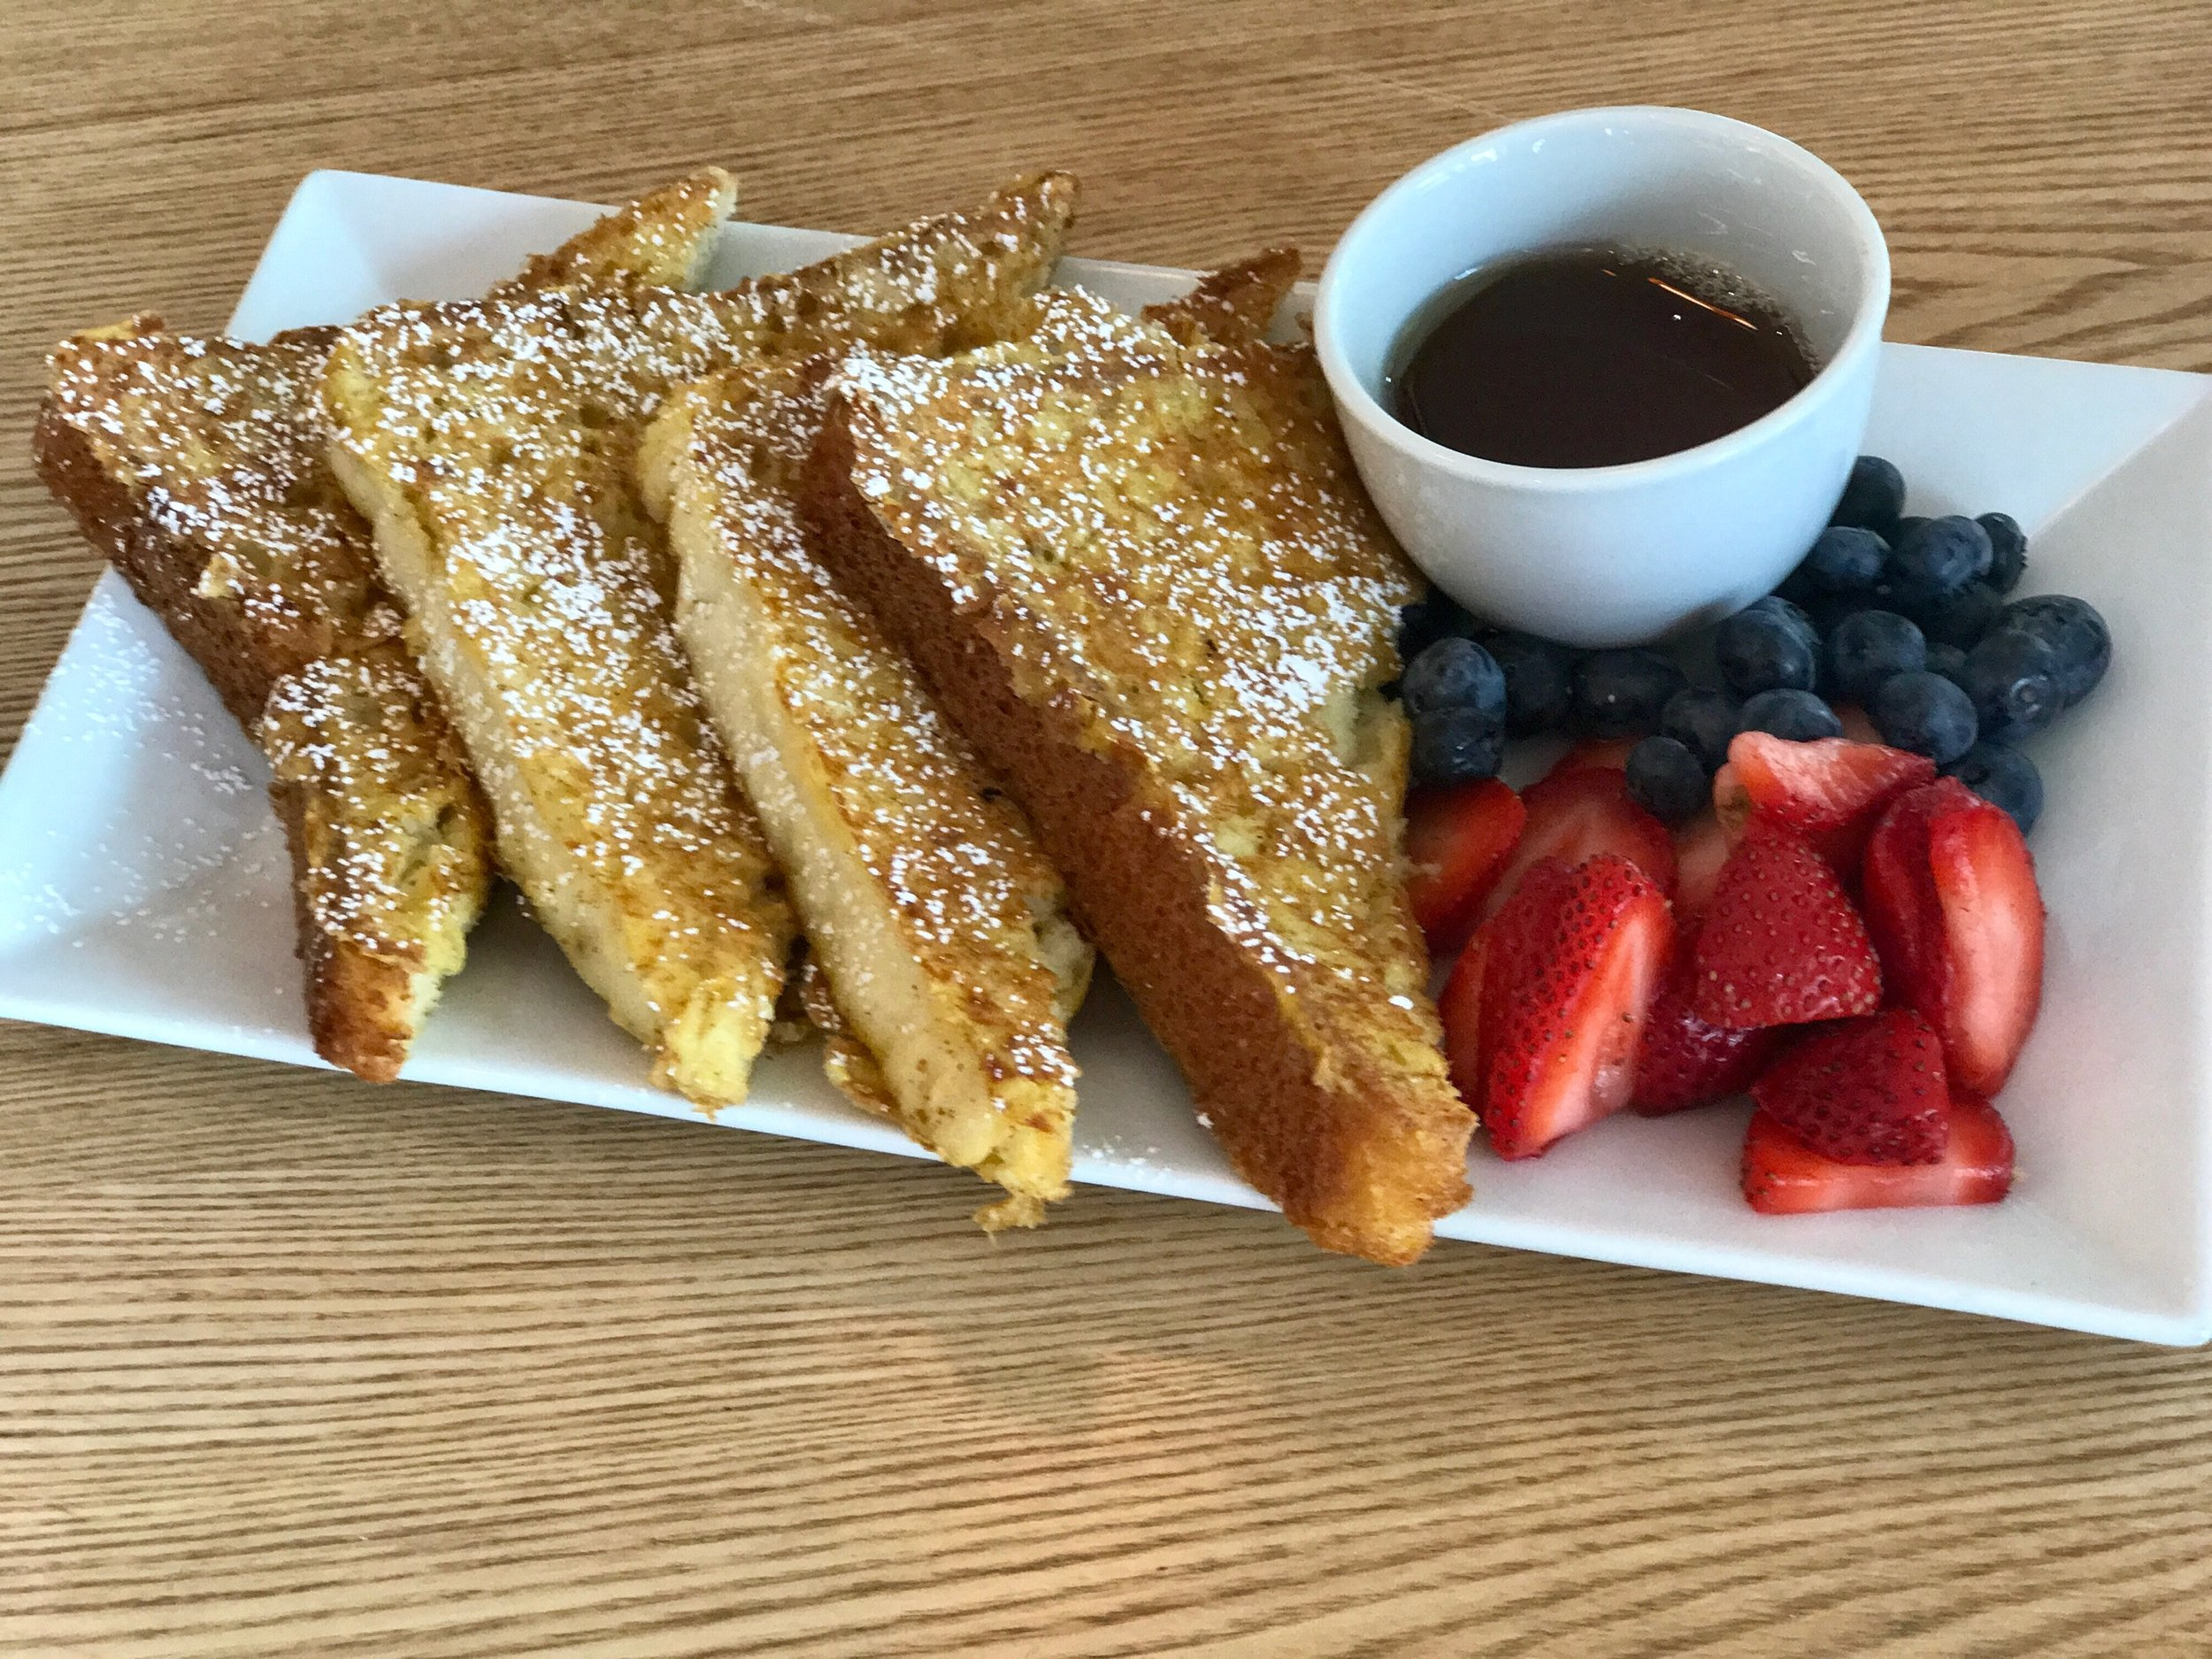 French toast so good you would never guess they are gluten-free. Served with real Vermont Maple Syrup!!